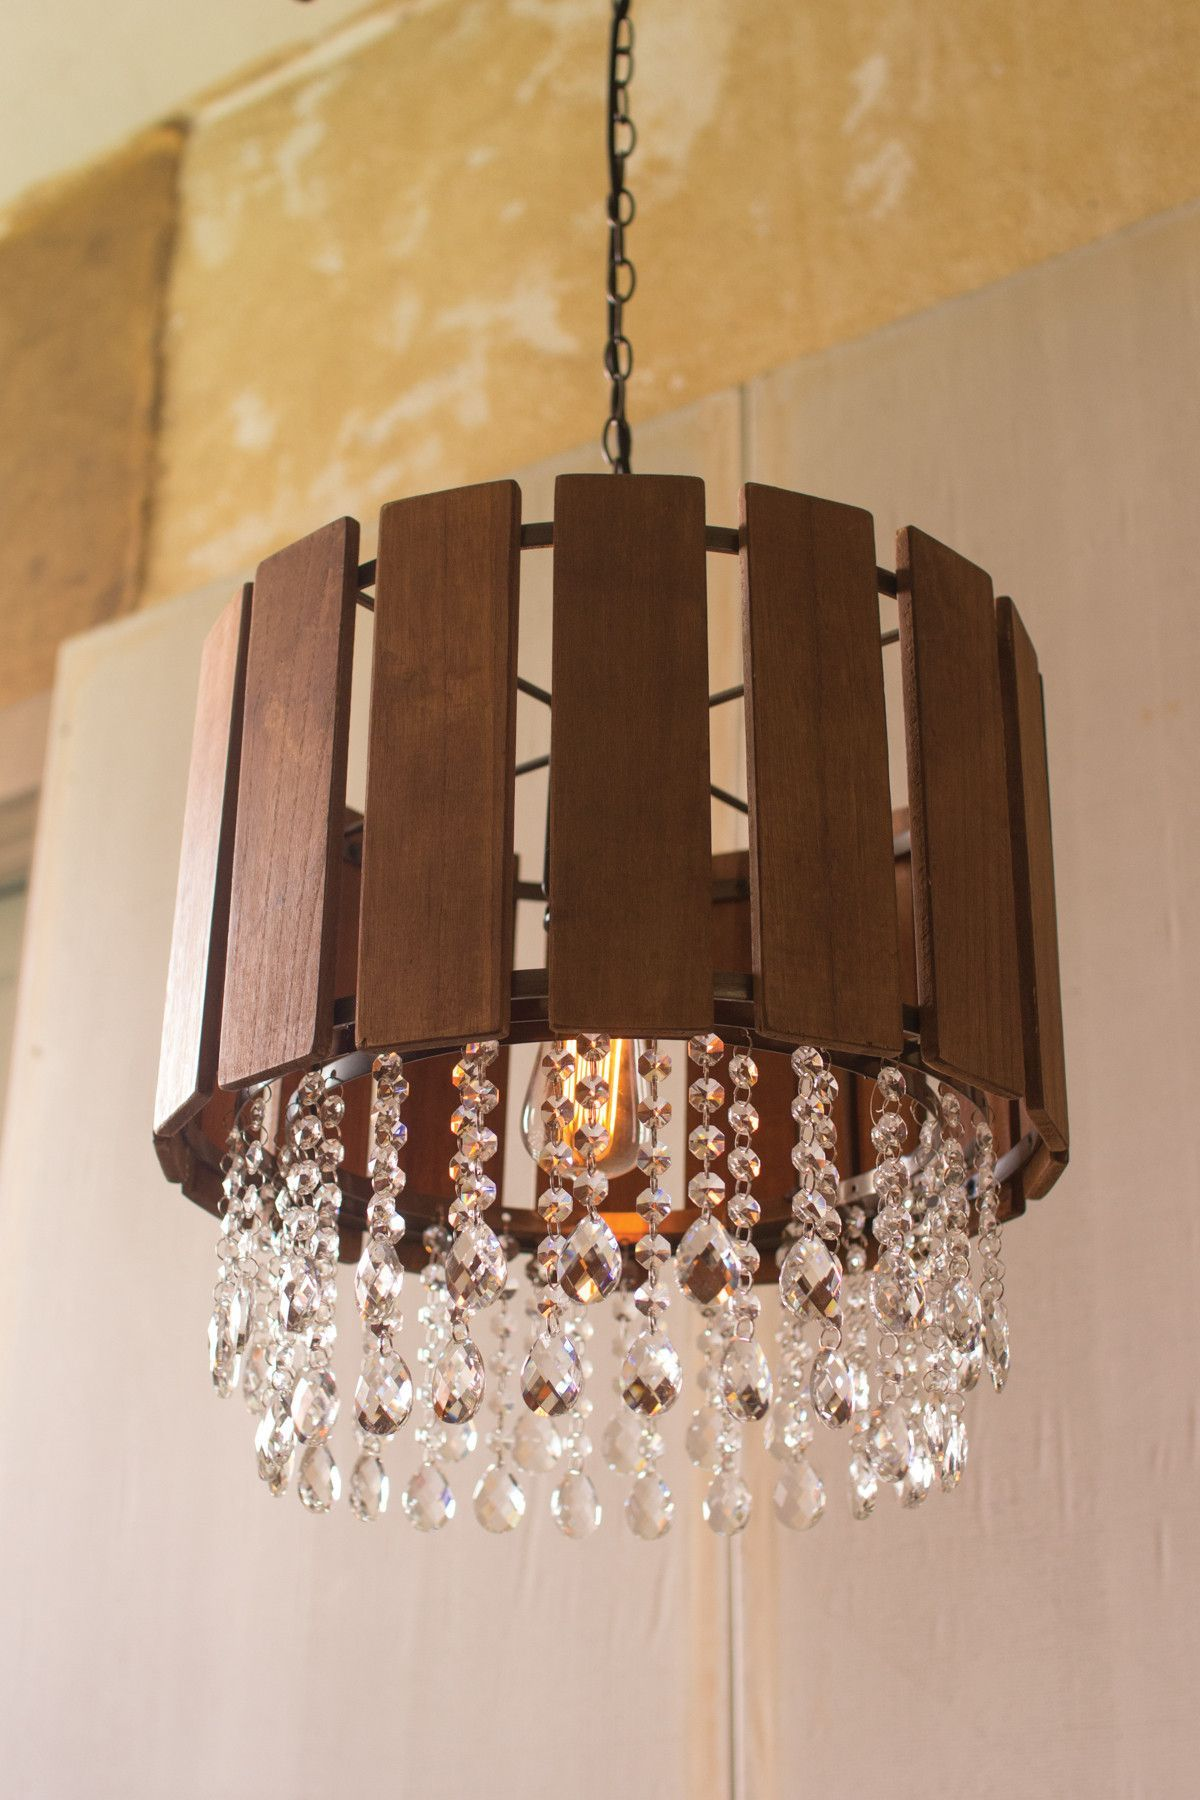 Slat Wood Pendant Light w/ Glass Gems